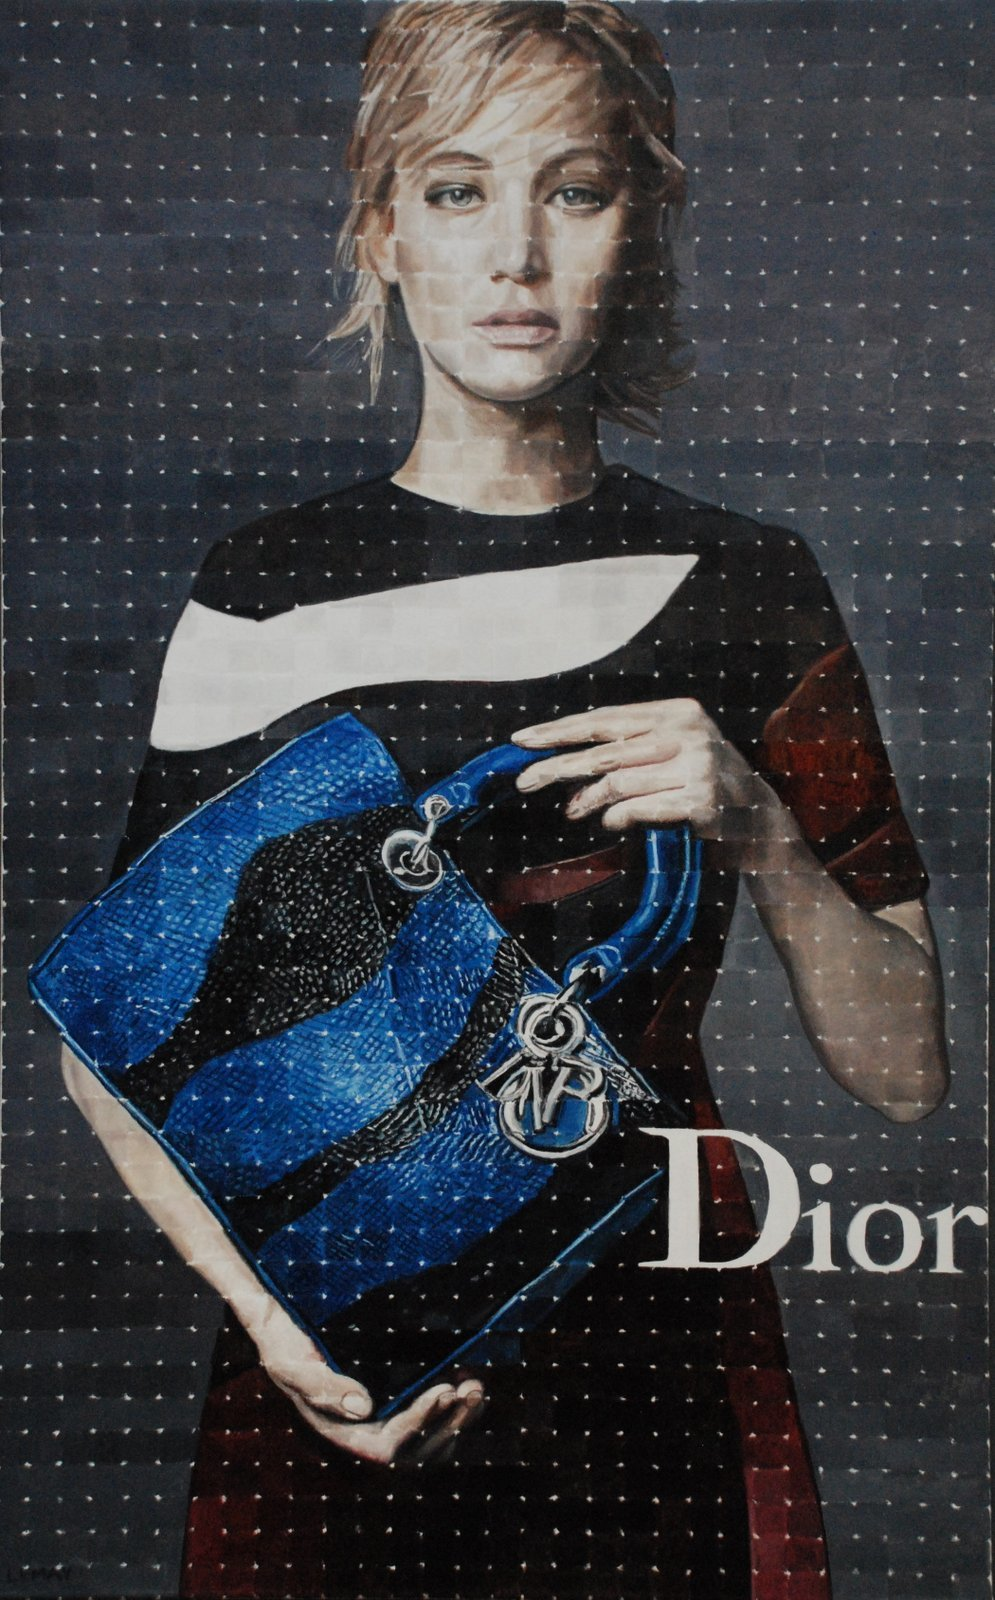 DIOR - 48X30 - OIL ON CANVAS - 2016